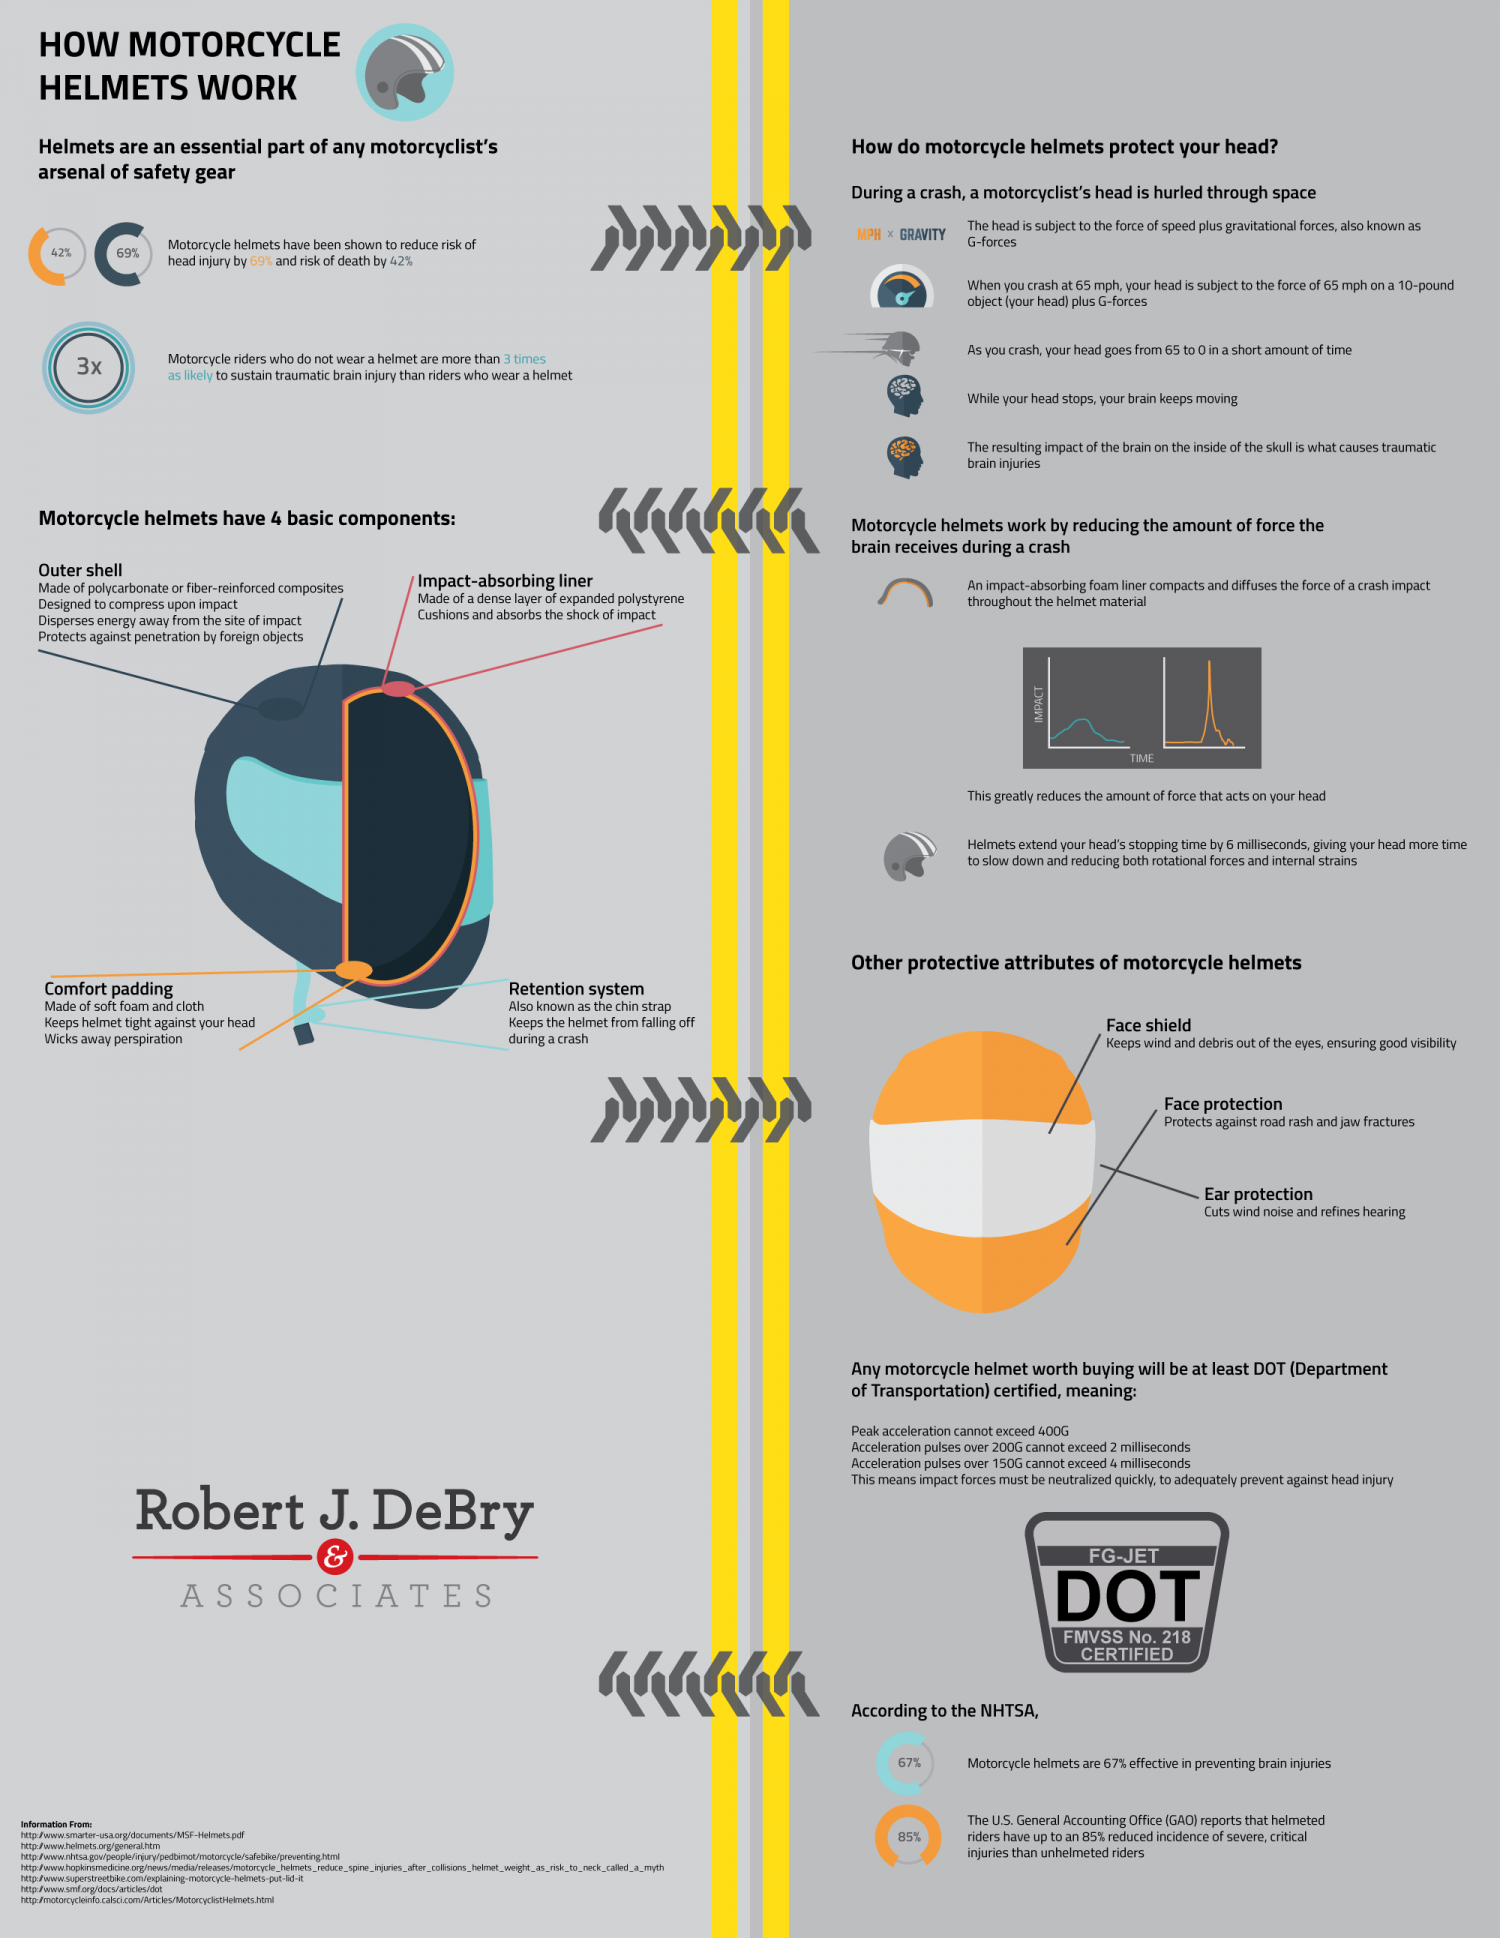 how motorcycle helmets work infographic